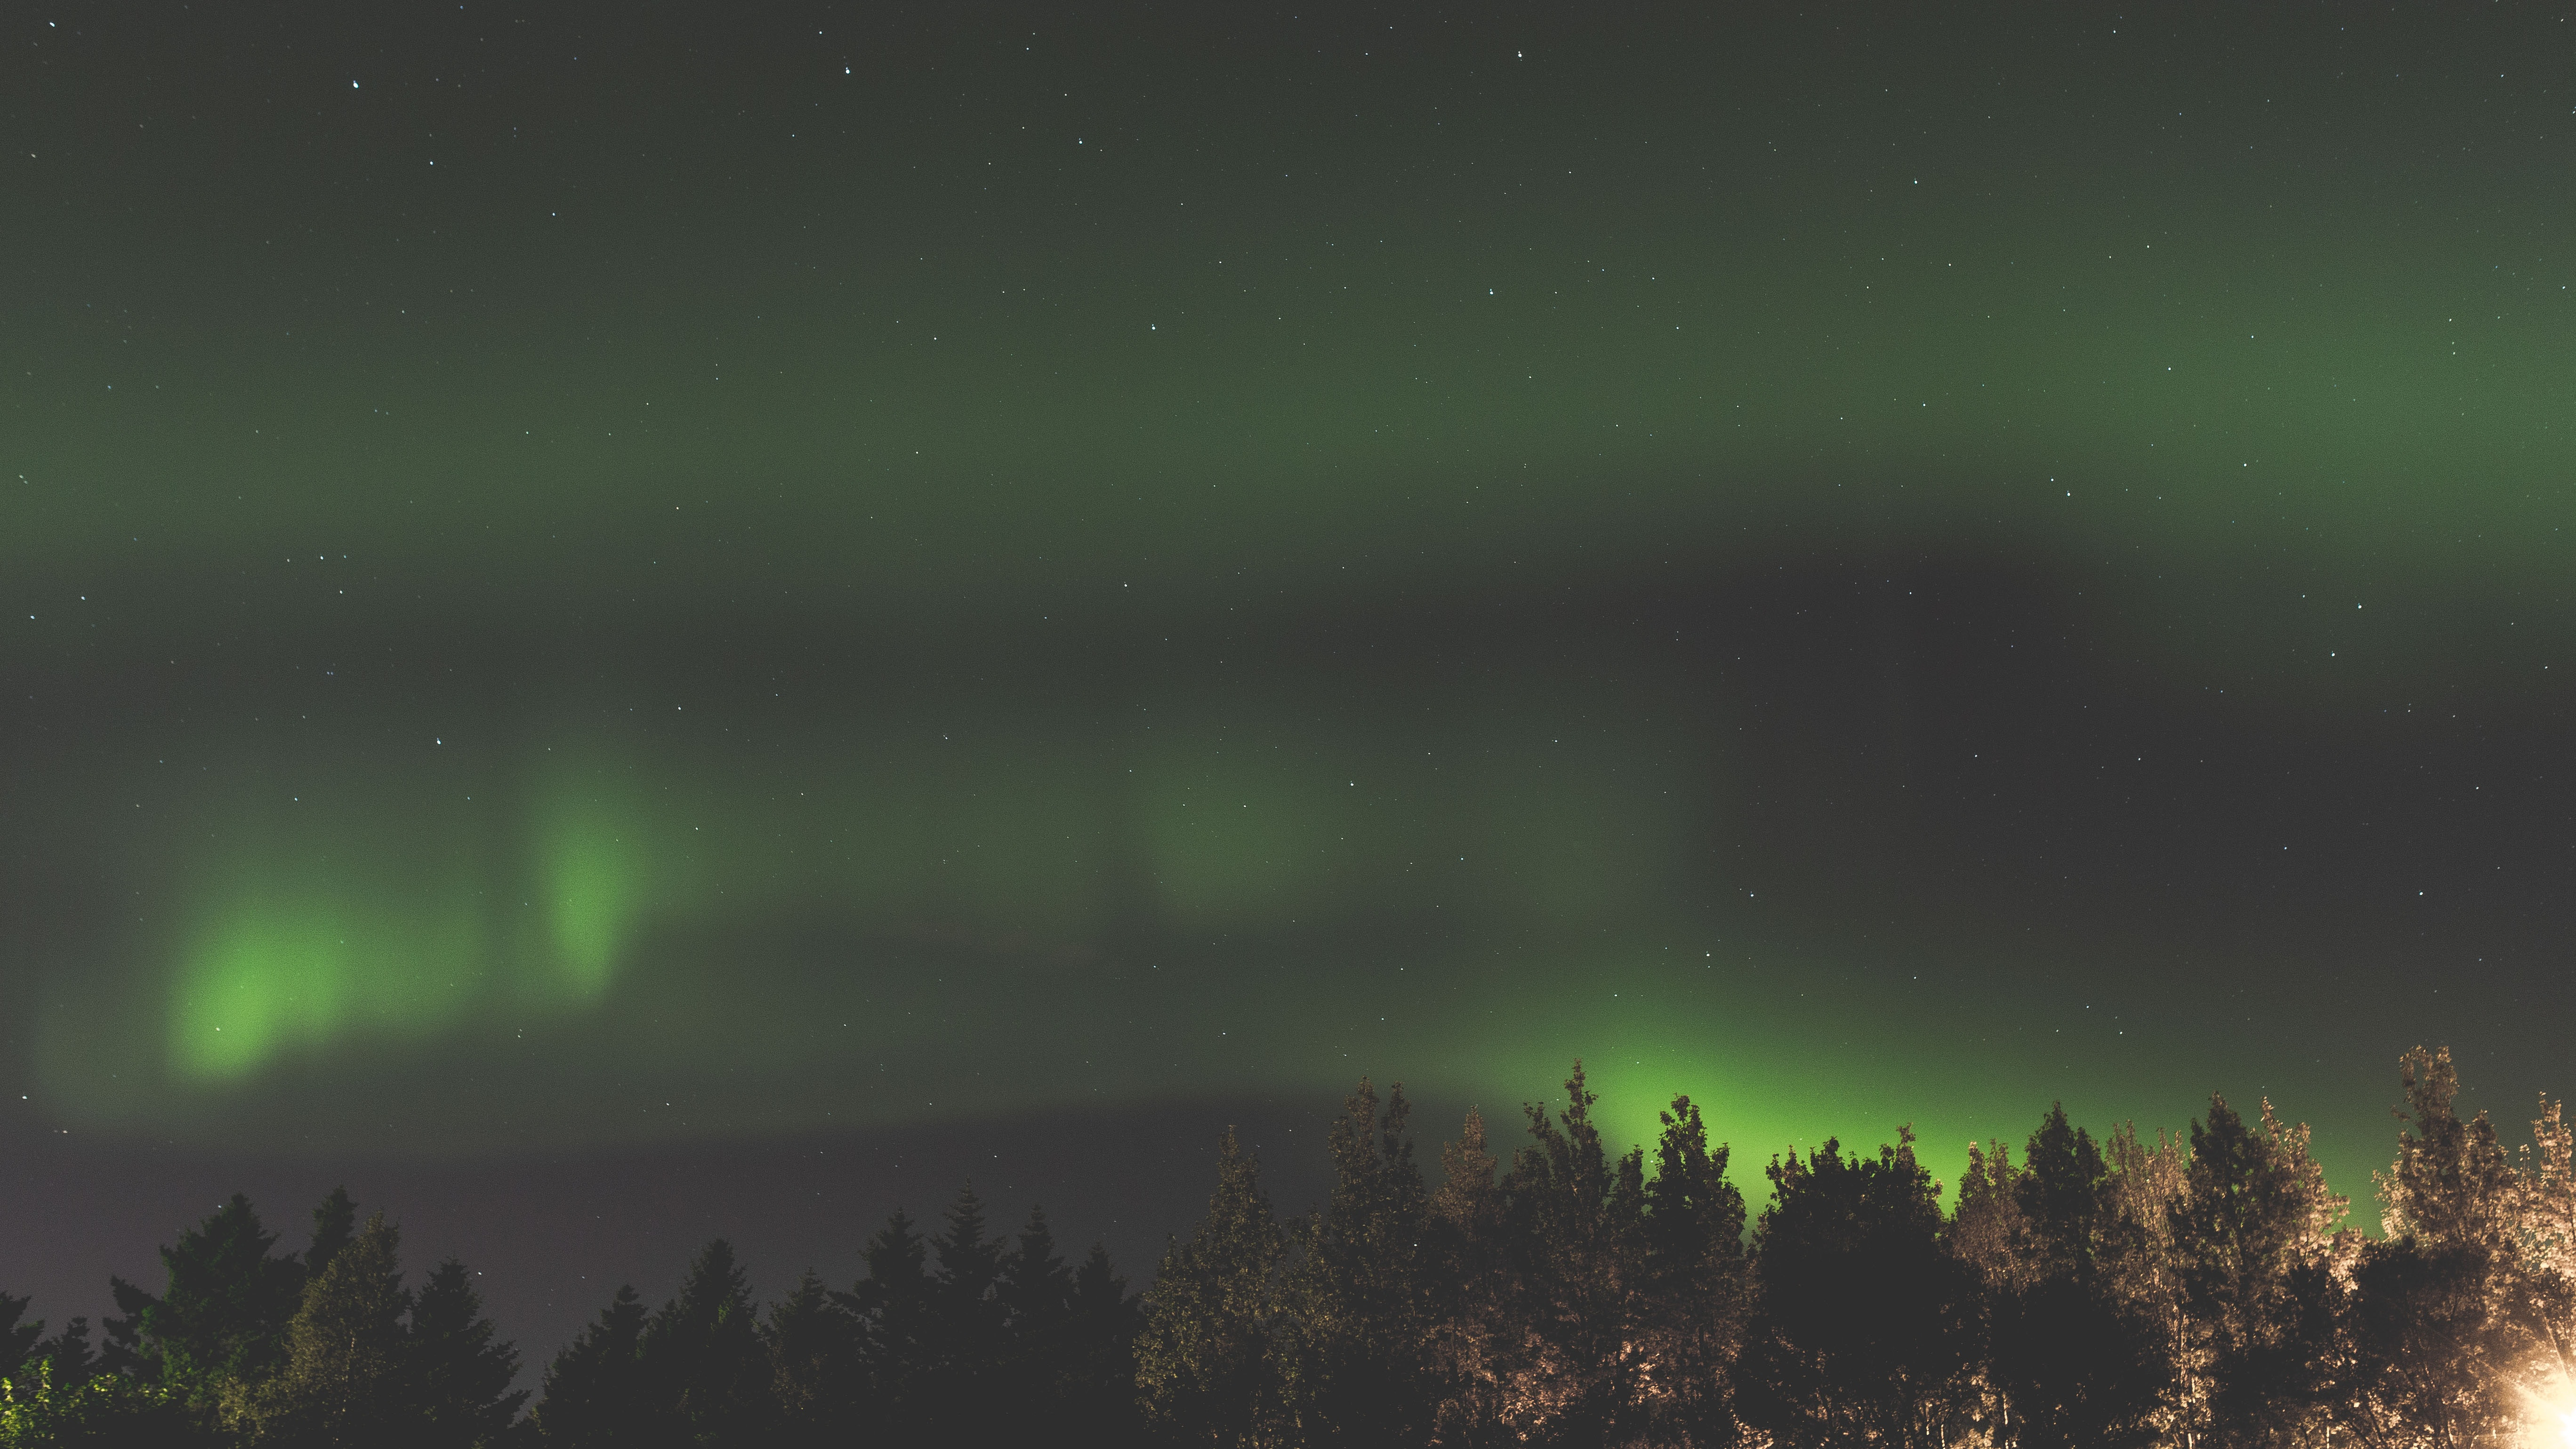 The beautiful Northern Lights viewed from a mountain top.